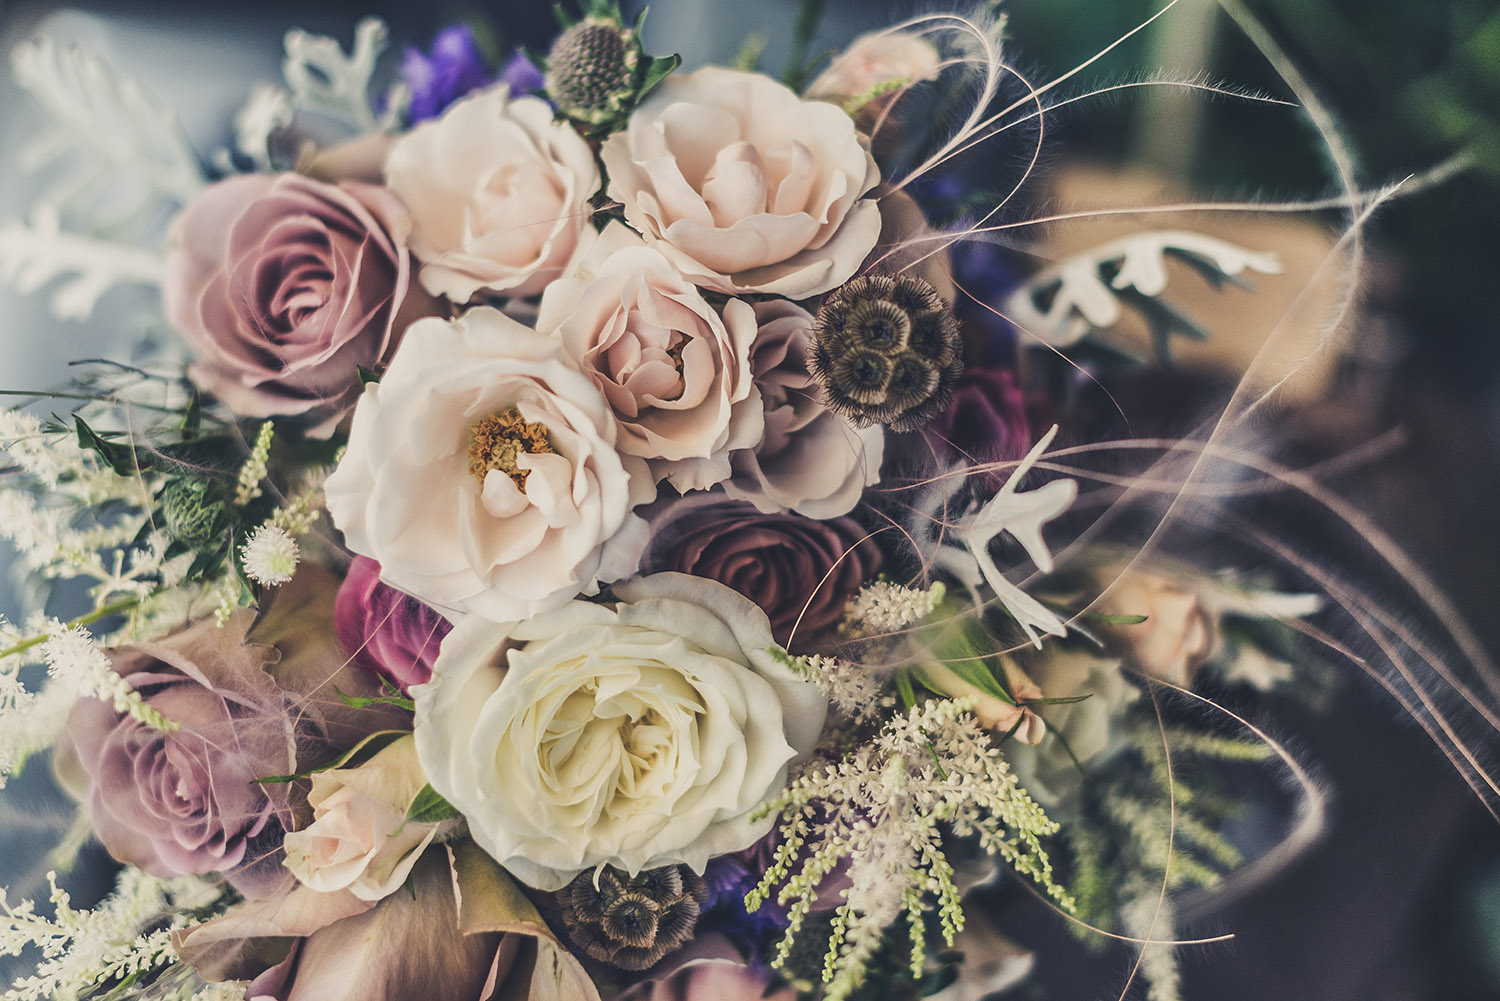 Flower reading is an ancient art that uses symbolism, intuition, and knowledge of flowers to interpret a message.